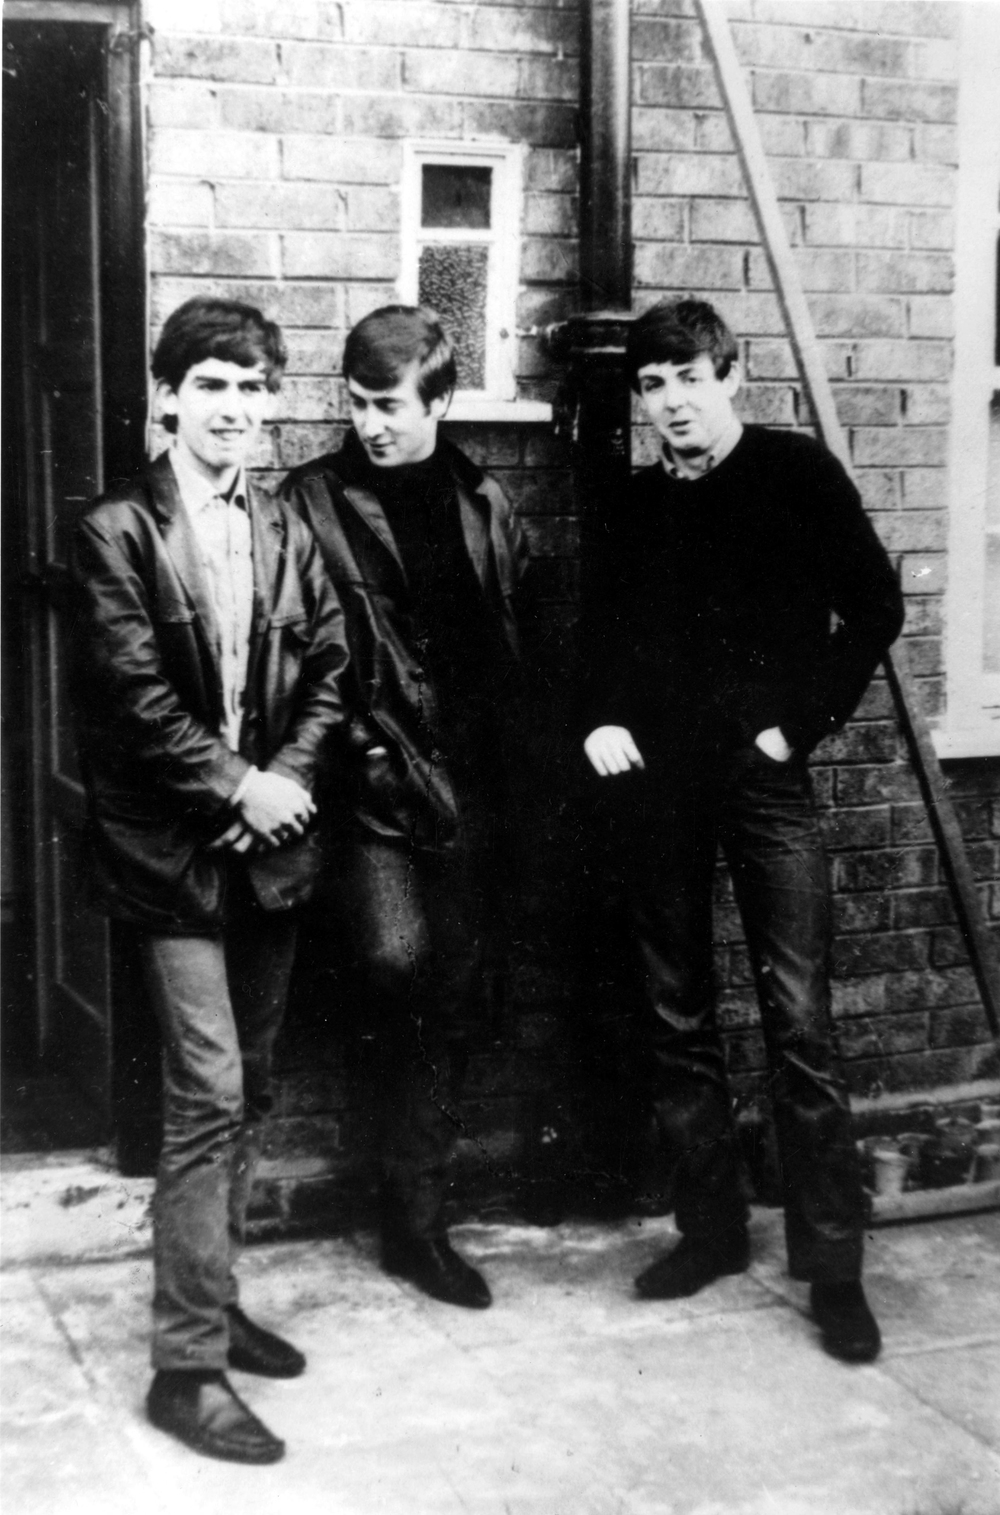 George Harrison, John Lennon and Paul McCartney in Liverpool, 1962.